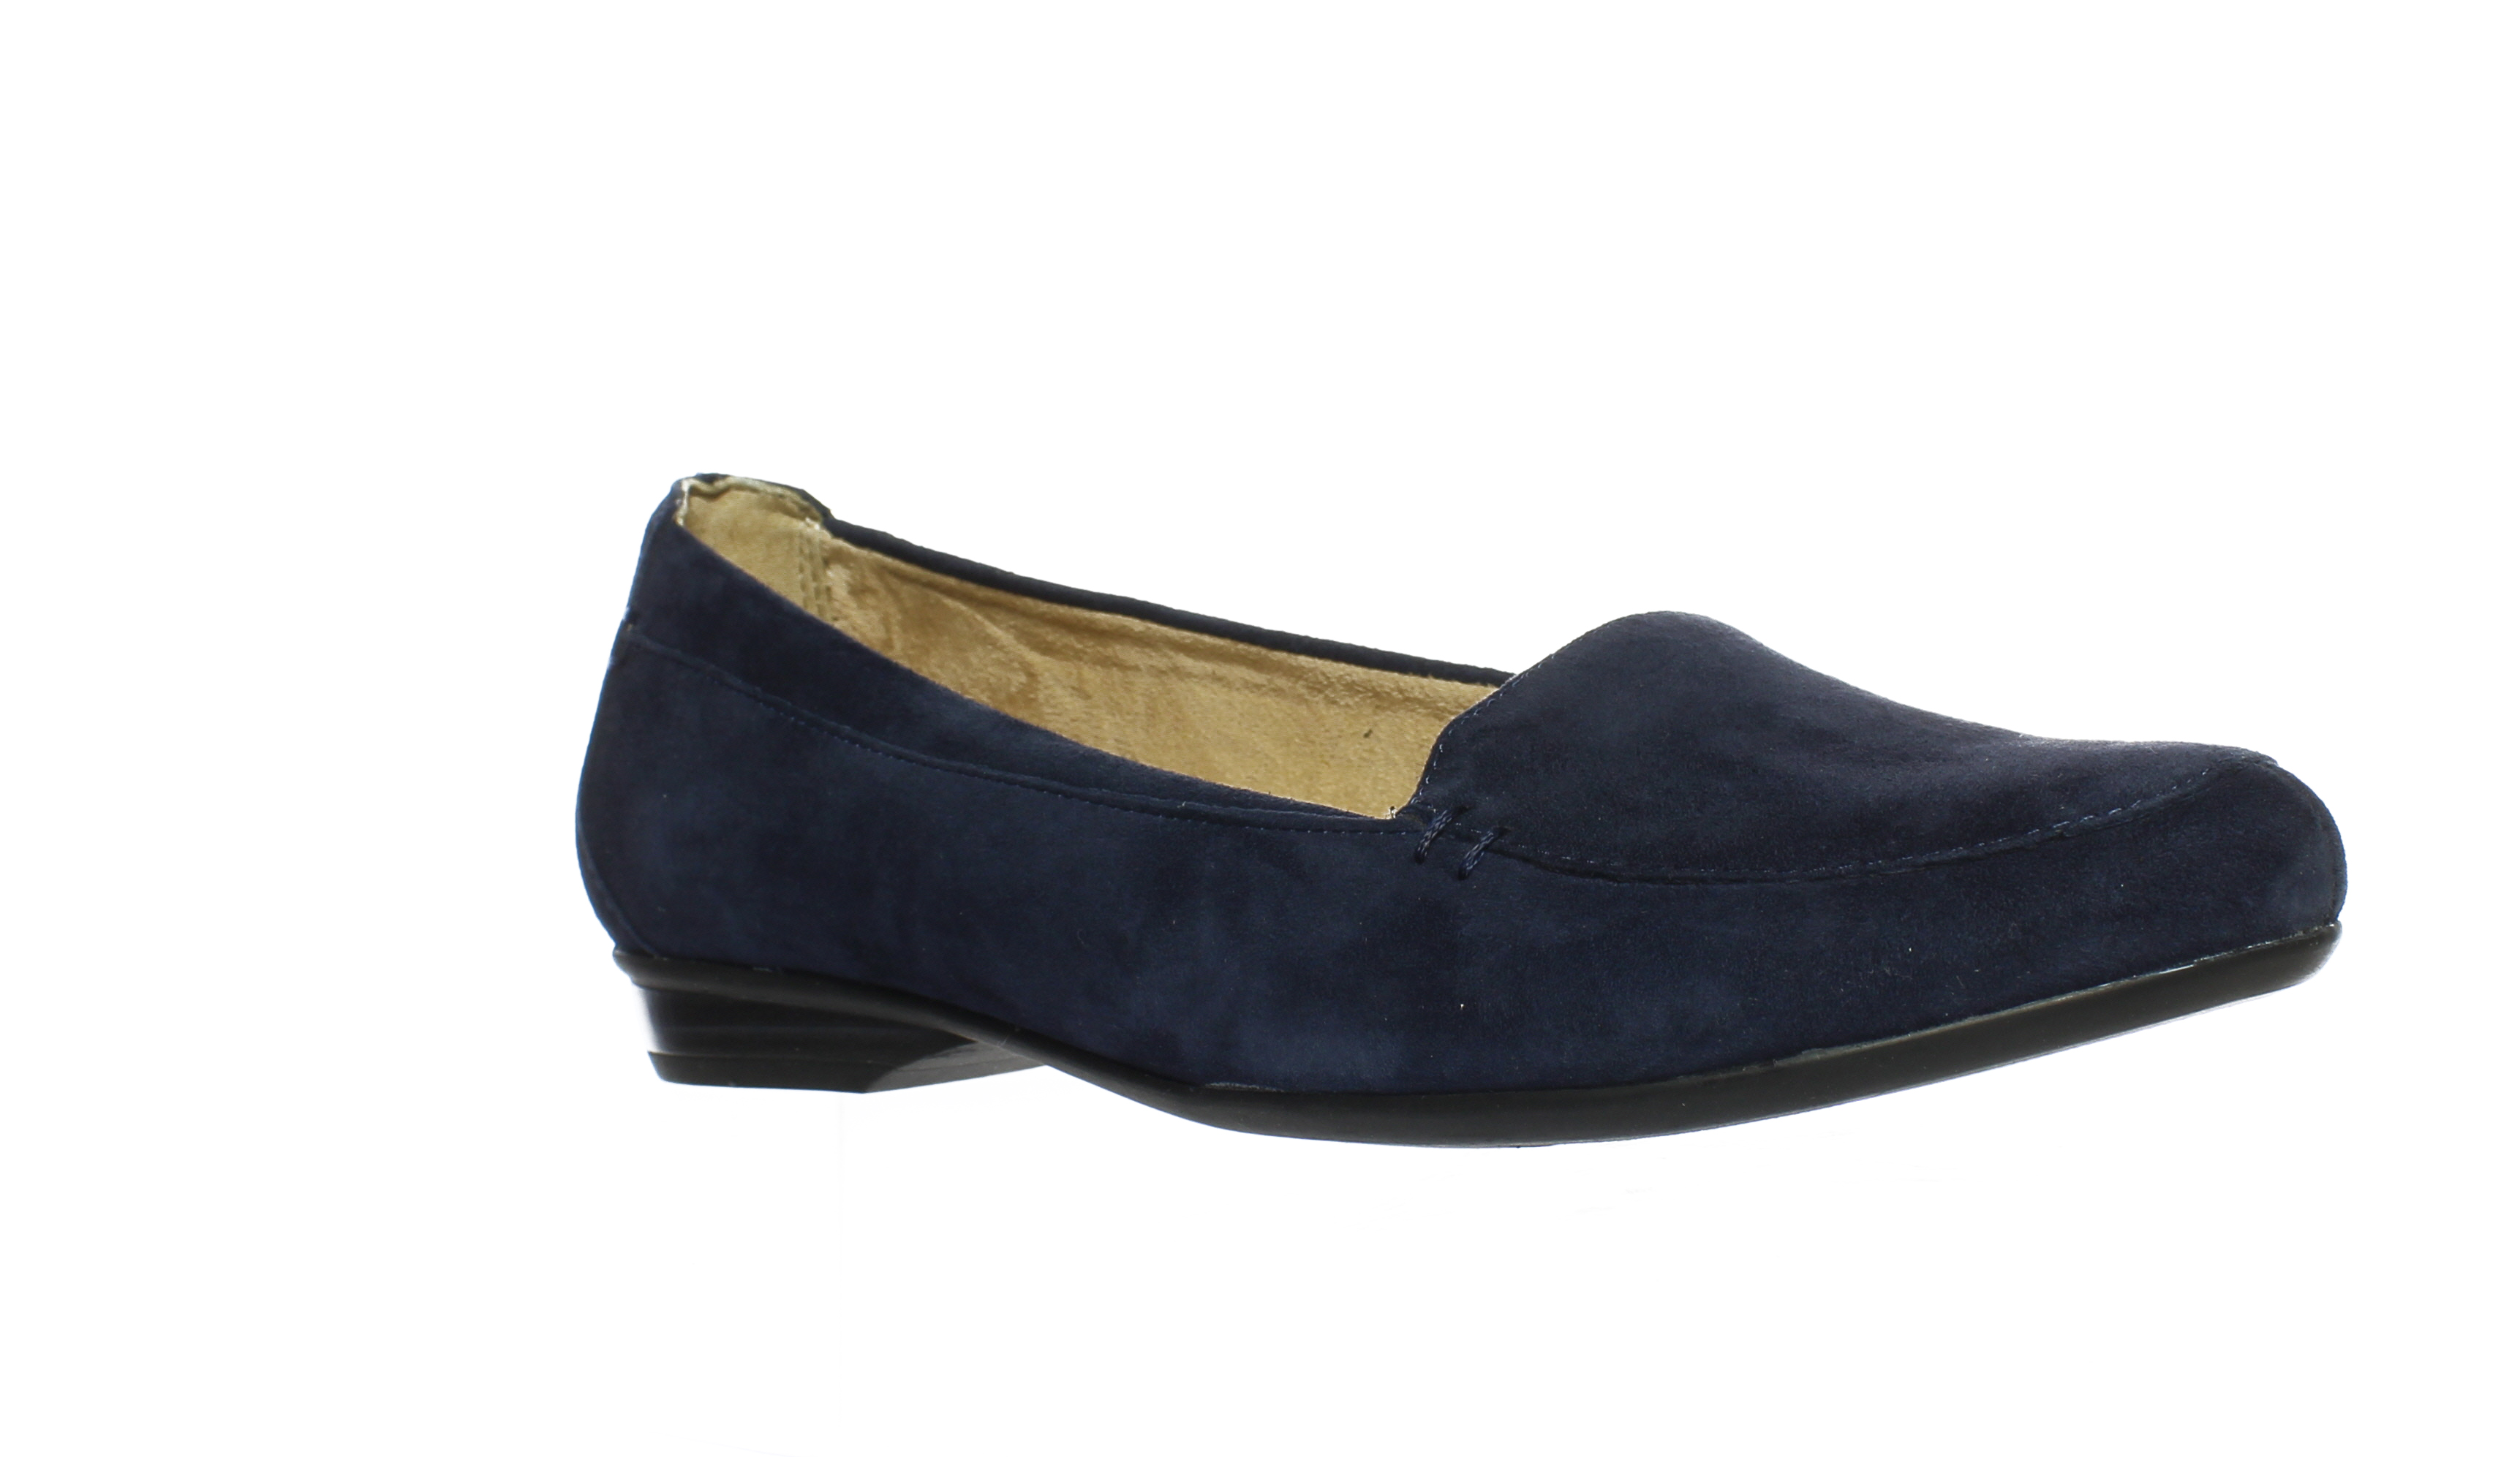 20bfc6e8227 Naturalizer Womens Saban Navy Loafers Size 8.5 (C